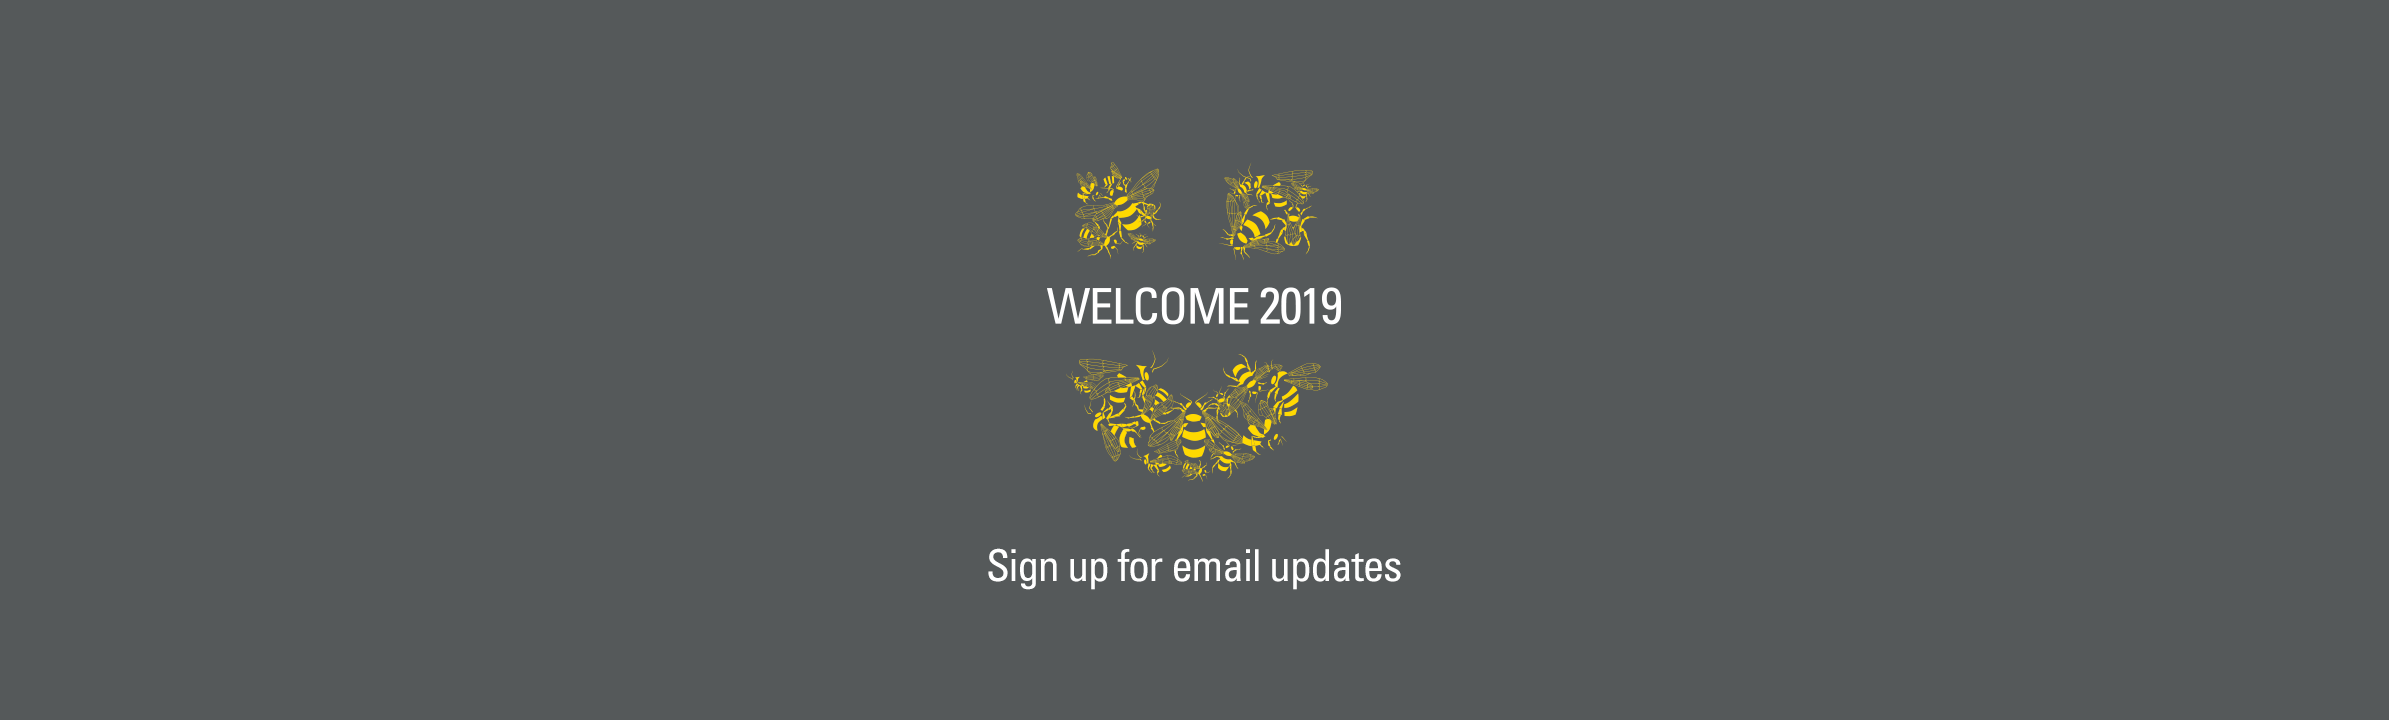 Header welcome email sign up